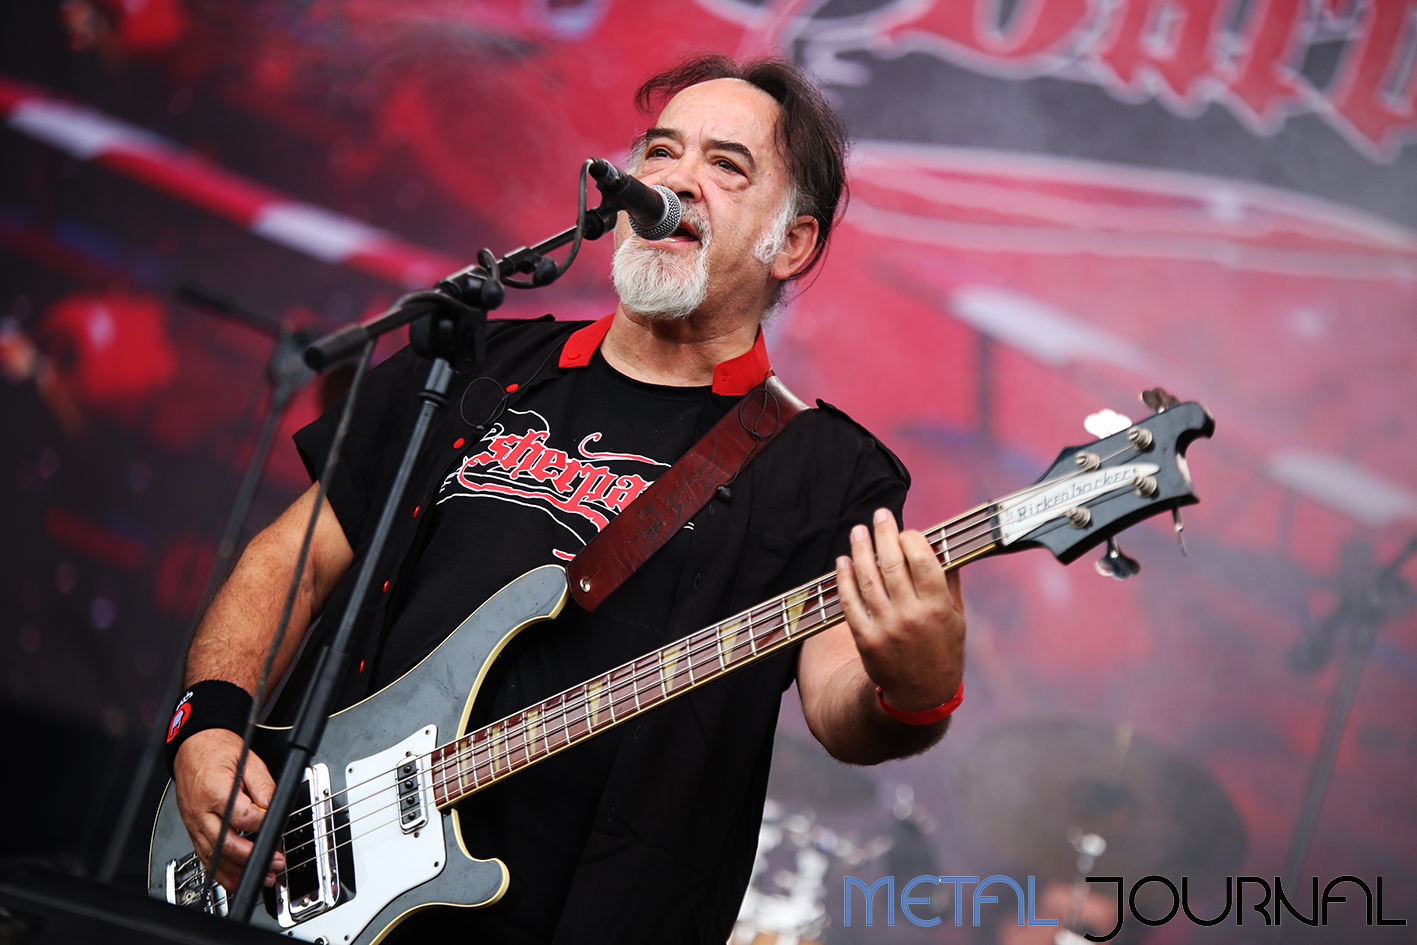 los barones - leyendas del rock 2019 metal journal pic 2